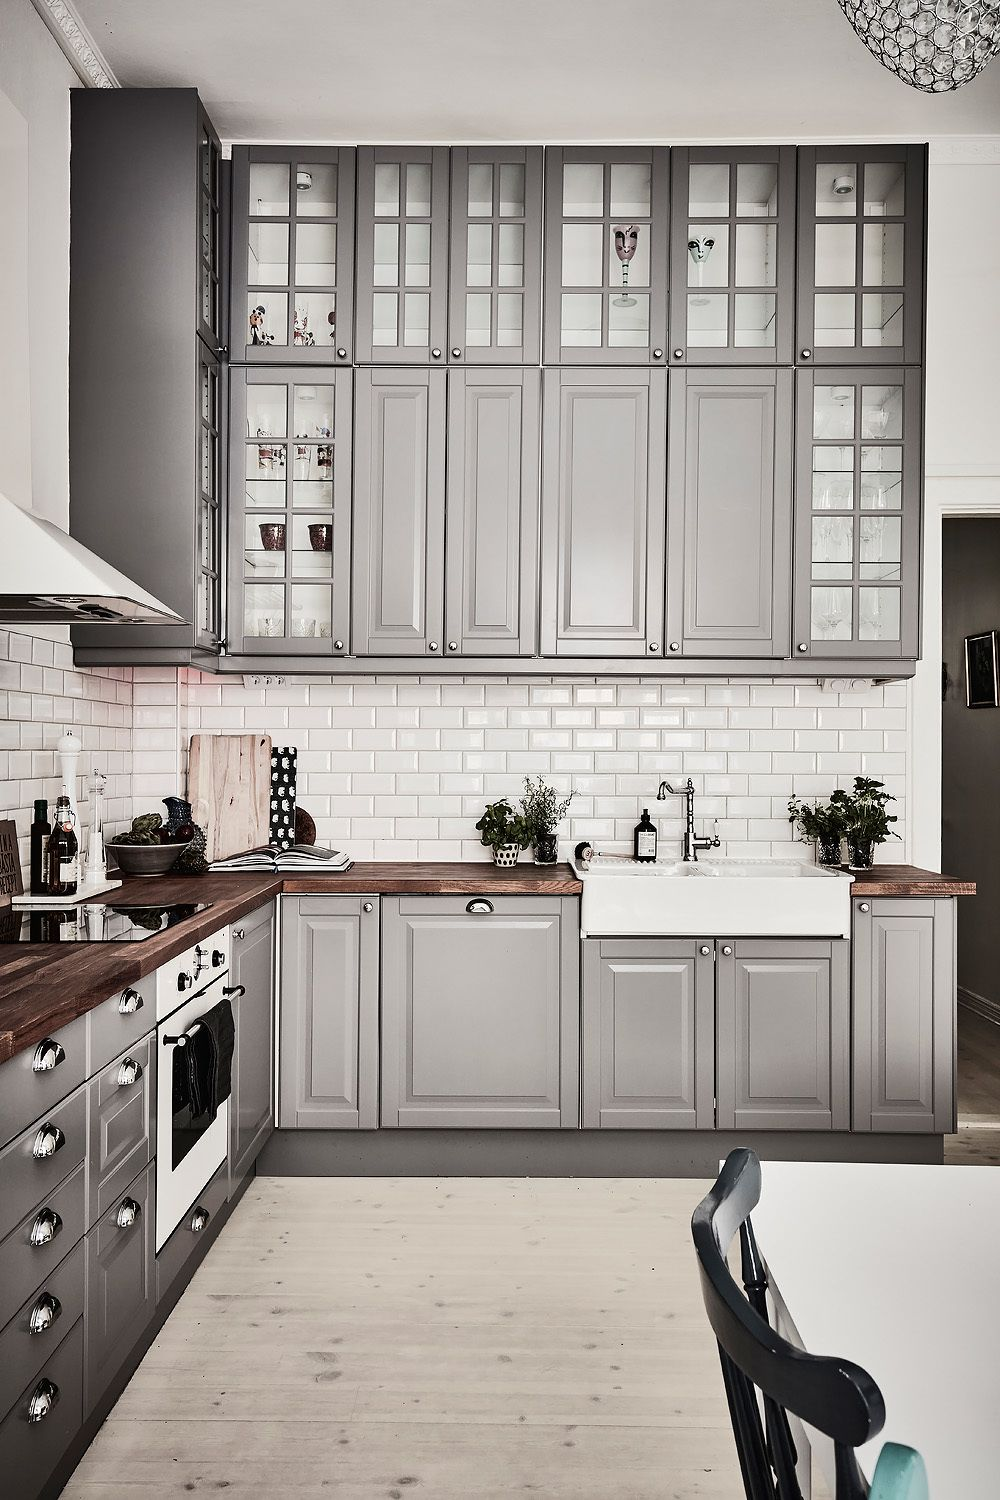 Inspiring Kitchens You Wont Believe Are IKEA Decorating Tips - Colours to match grey kitchen units